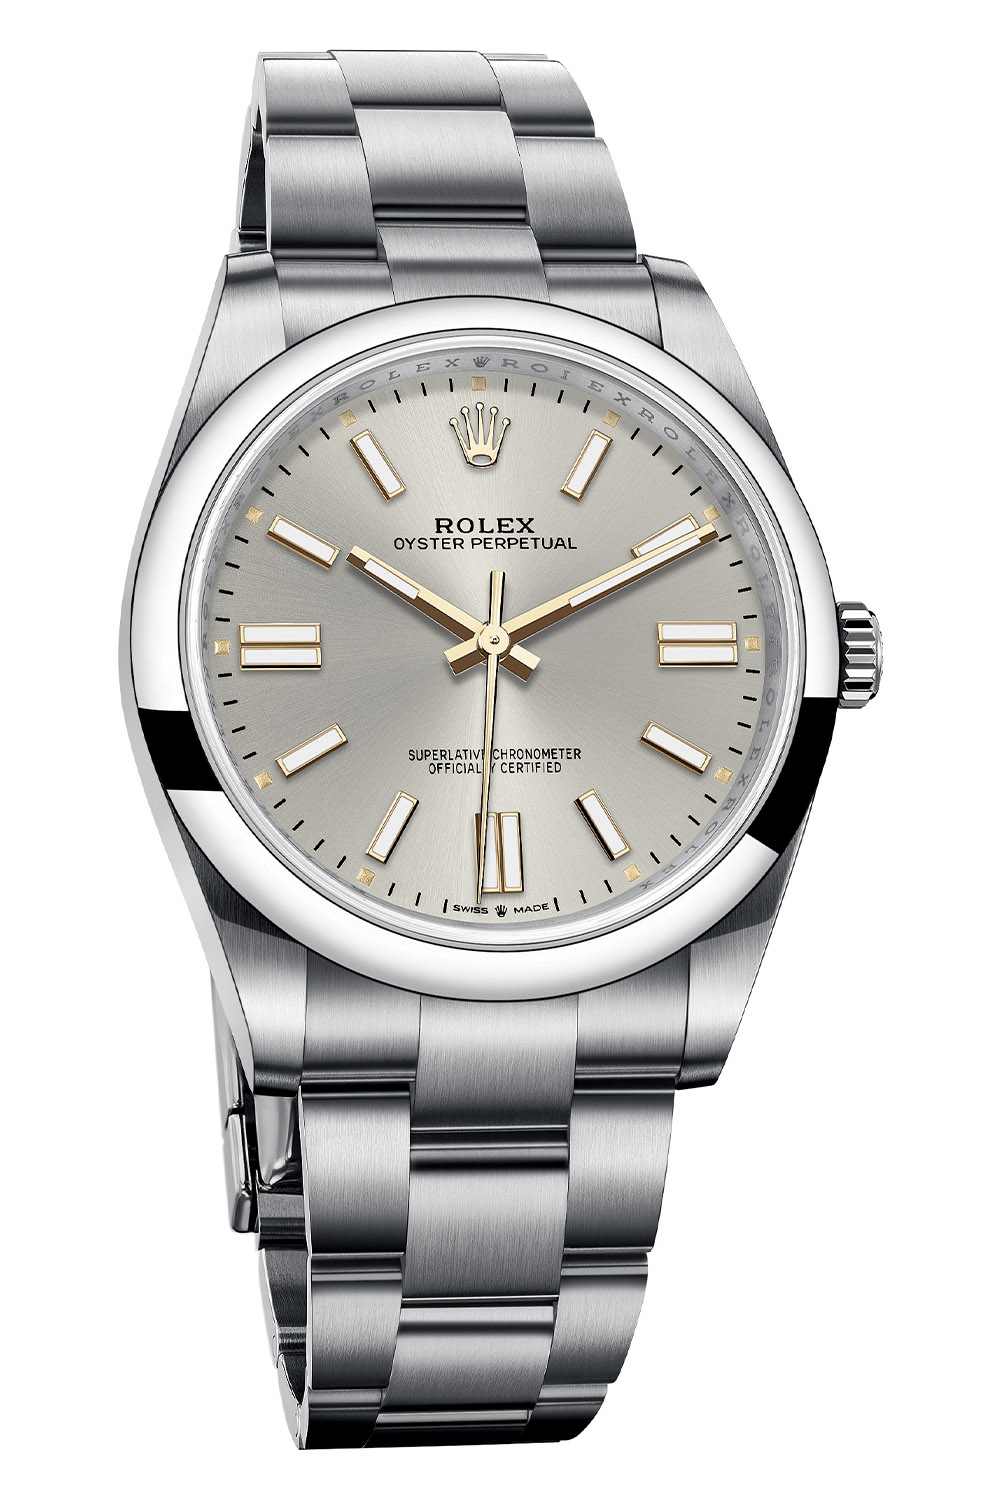 2020 Rolex Oyster Perpetual 41 reference 124300 - 8